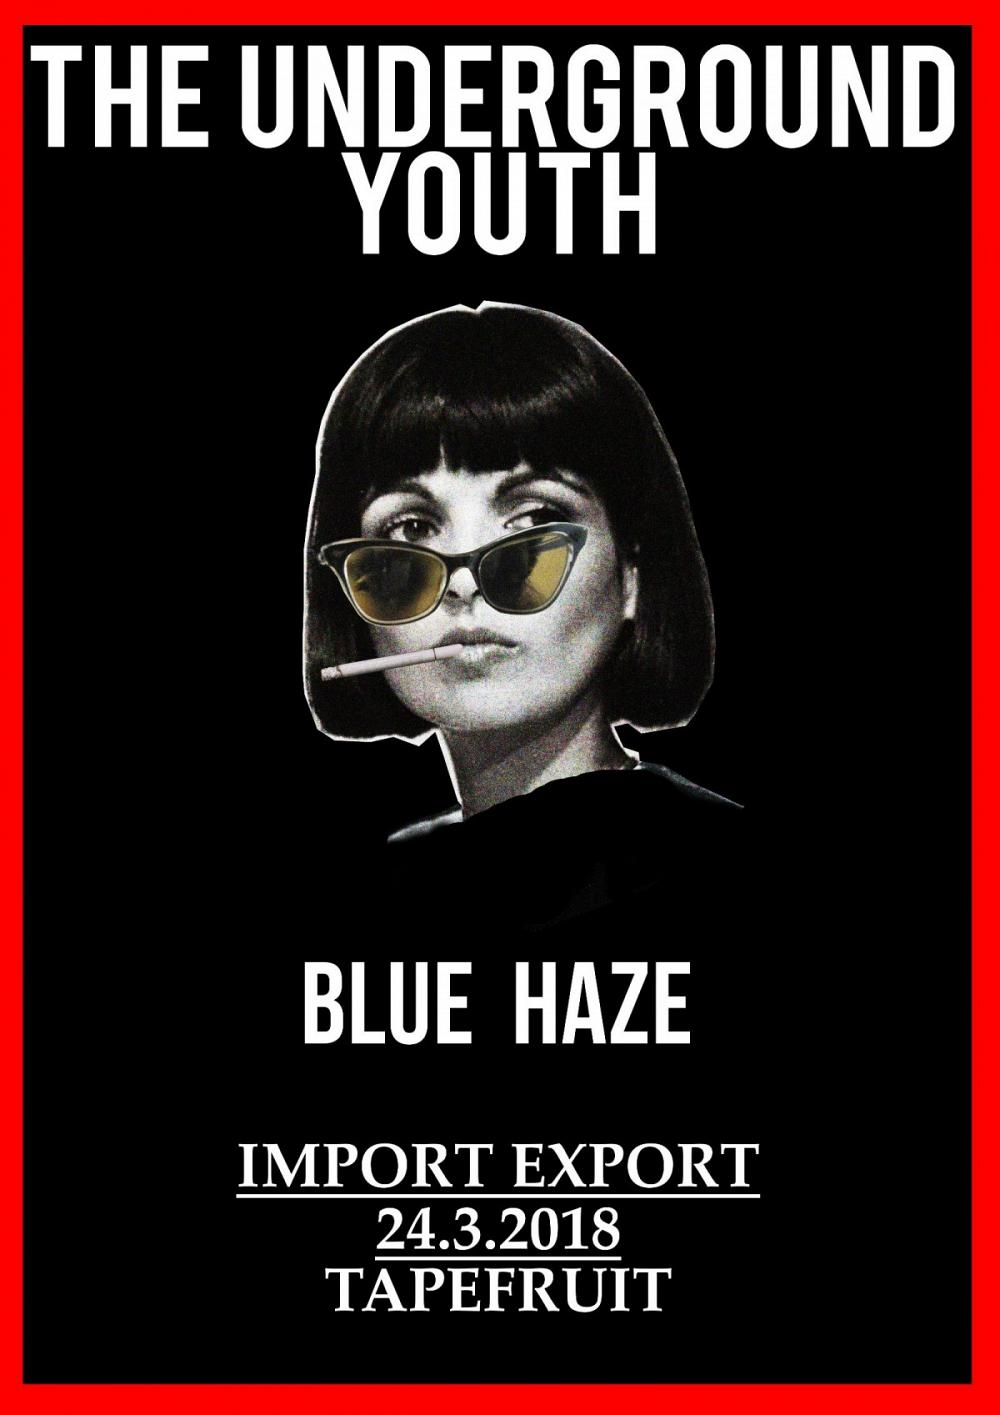 Tapefruit Konzert: The Underground Youth + Blue Haze | 24.03.2018 @ Import Export